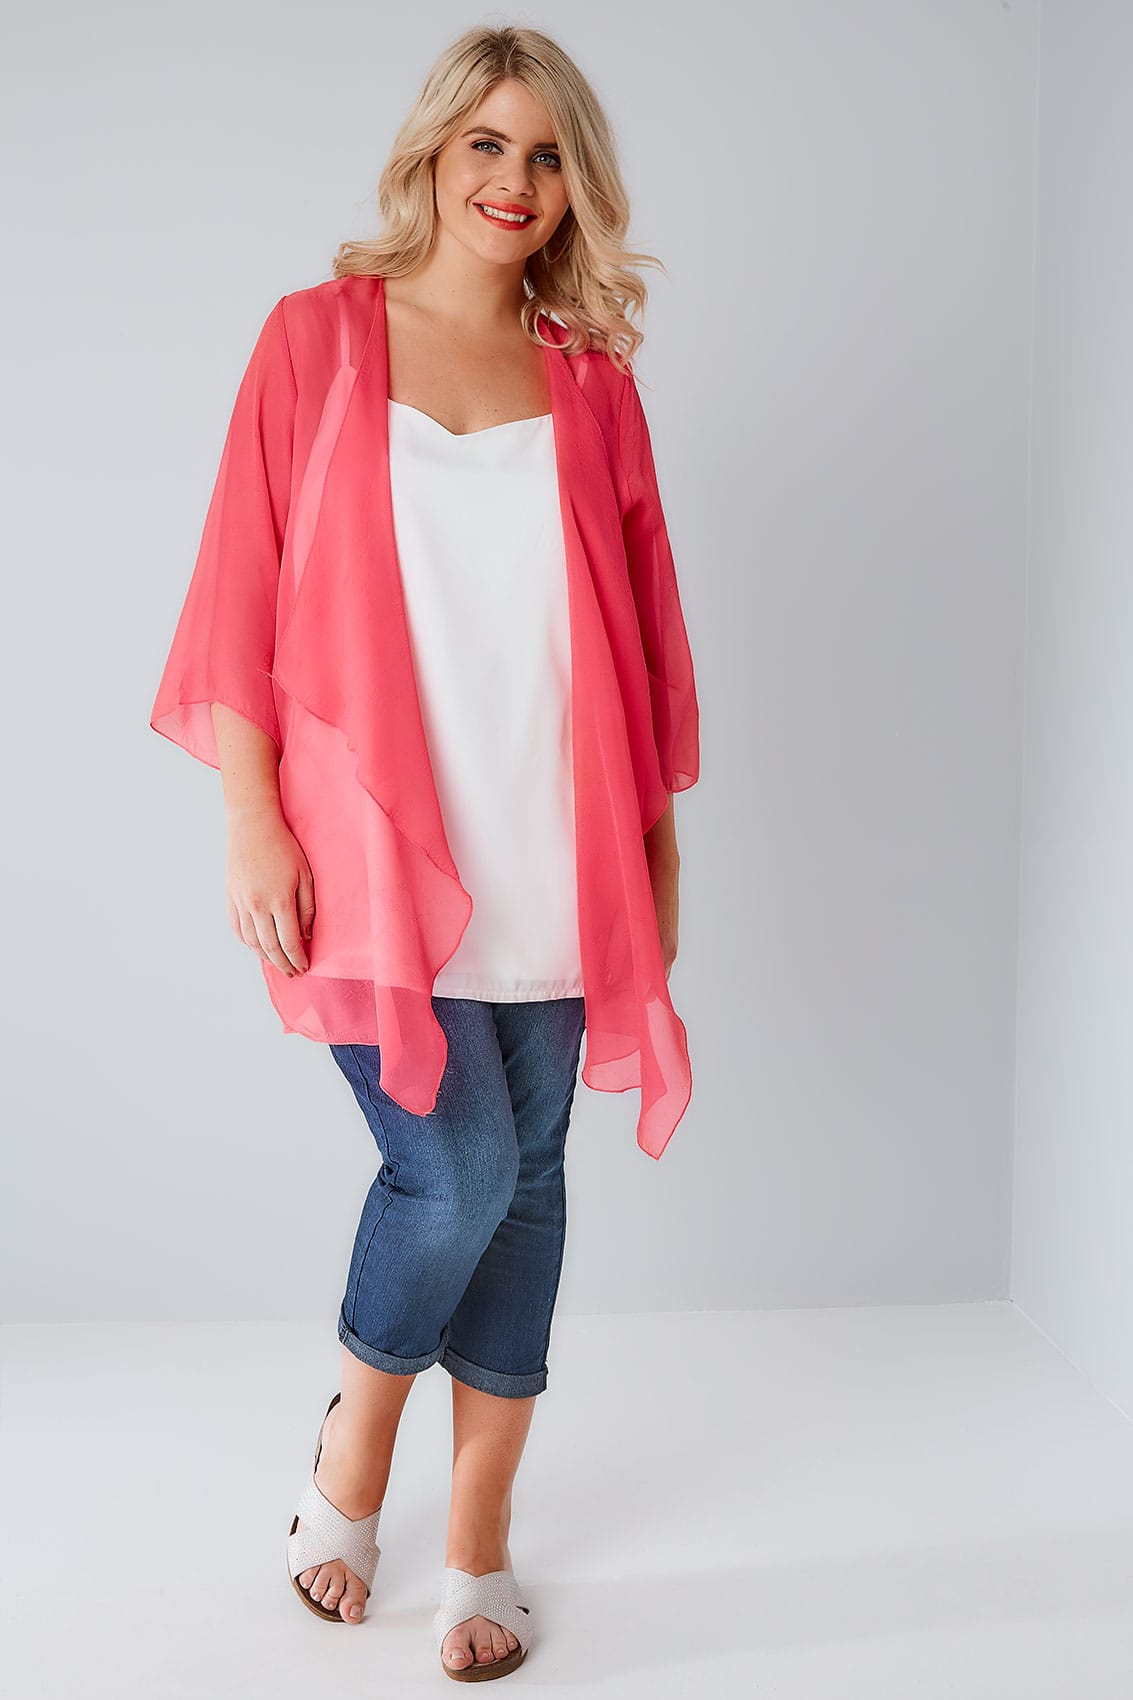 Hot Pink Textured Chiffon Kimono With Waterfall Front plus size 16 ...